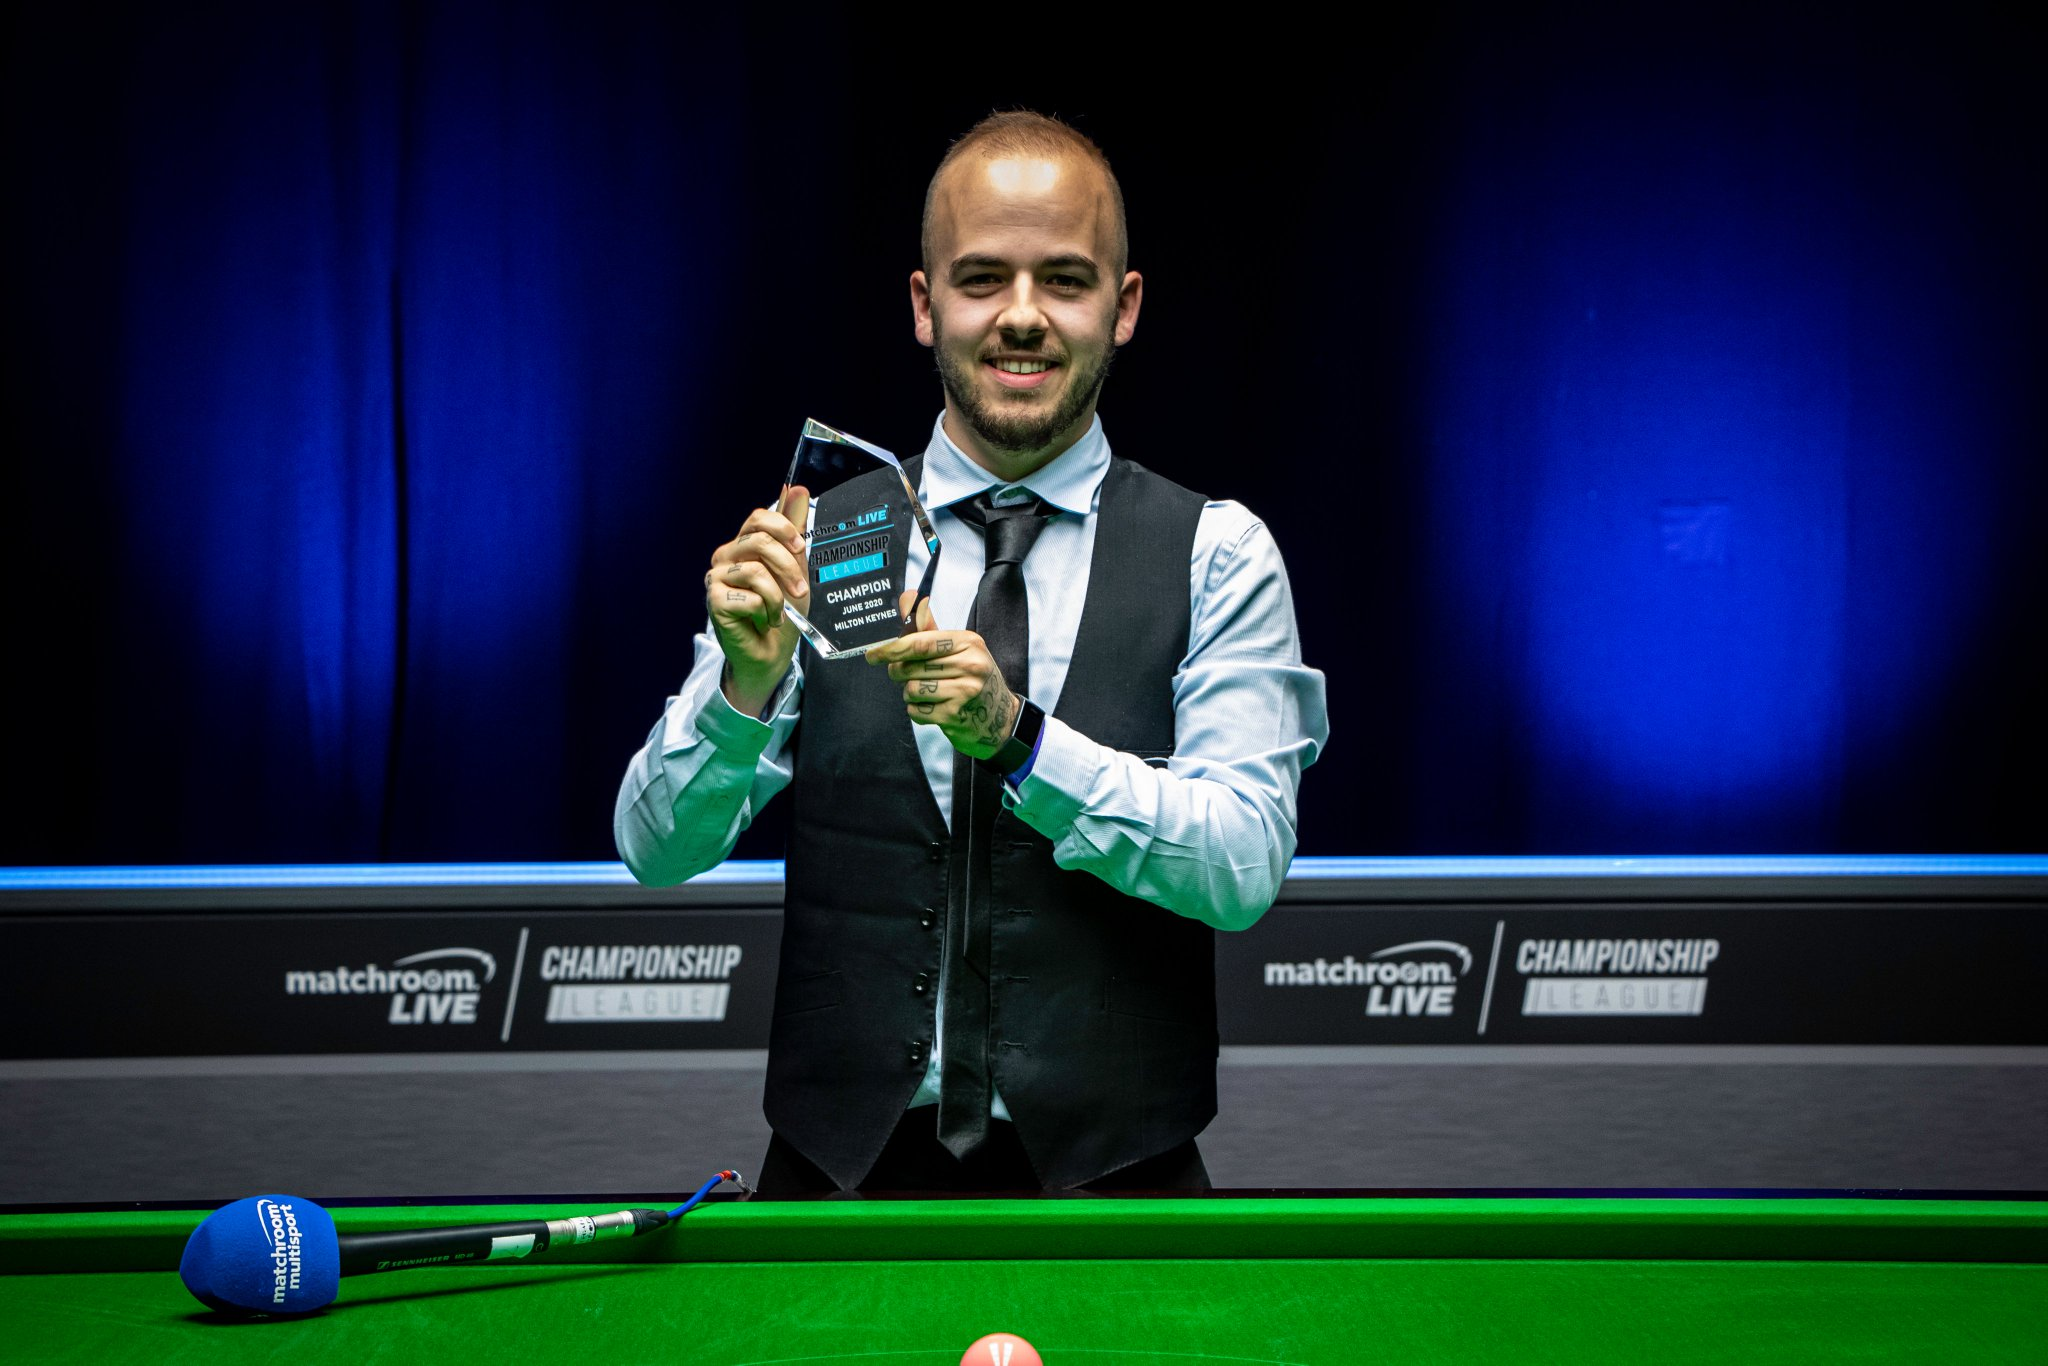 Brilliant Luca Brecel claims Championship League glory